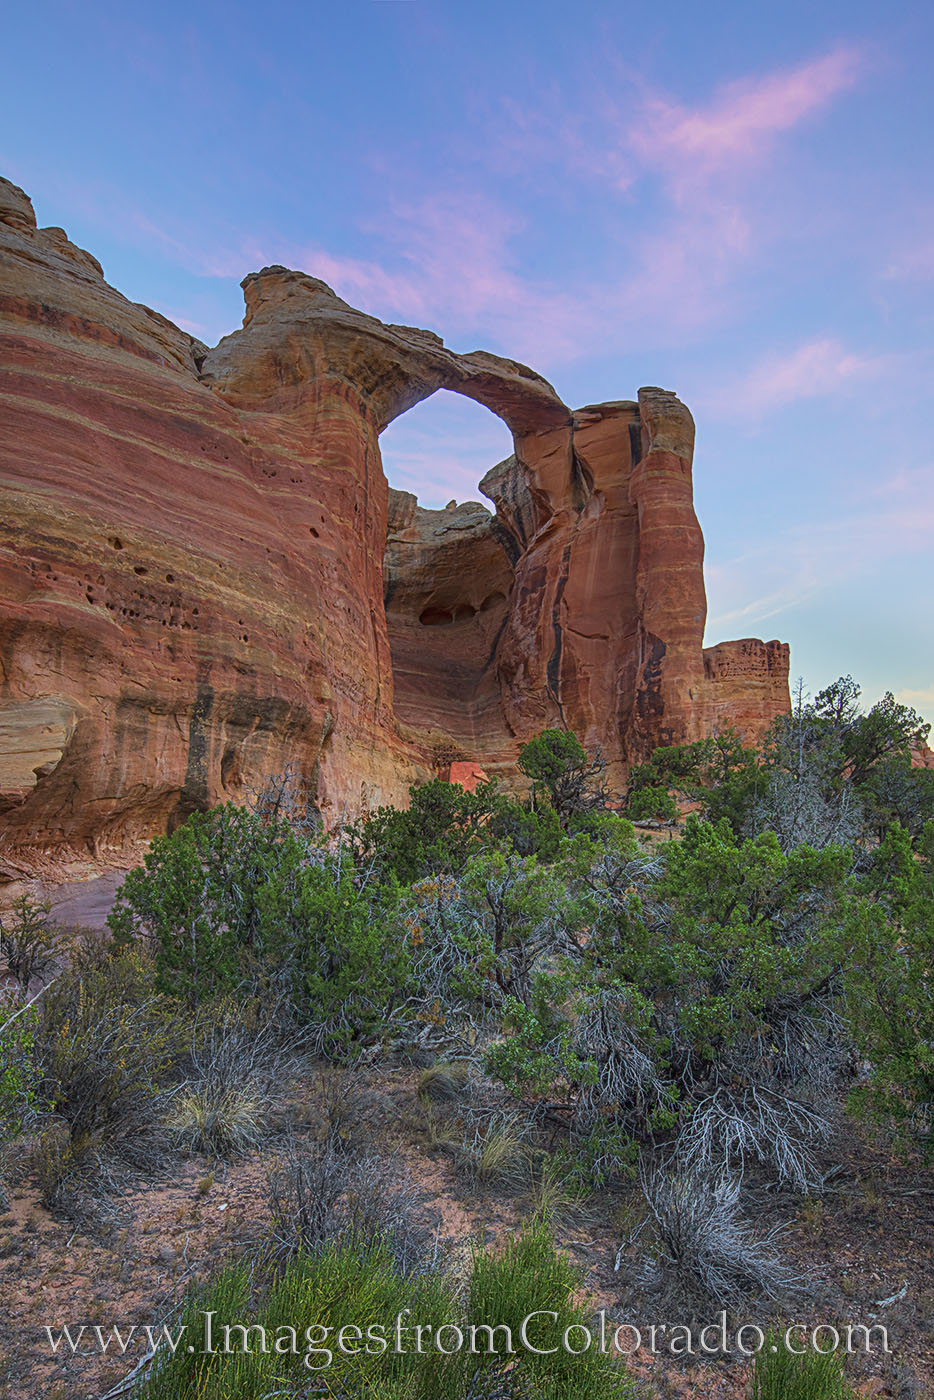 rattlesnake arch, arches, centennial arch, arches loop, colorado national monument, grand junction, mcinnis canyons, western colorado, colorado plateau, morning, sunrise, hiking, exploring, photo